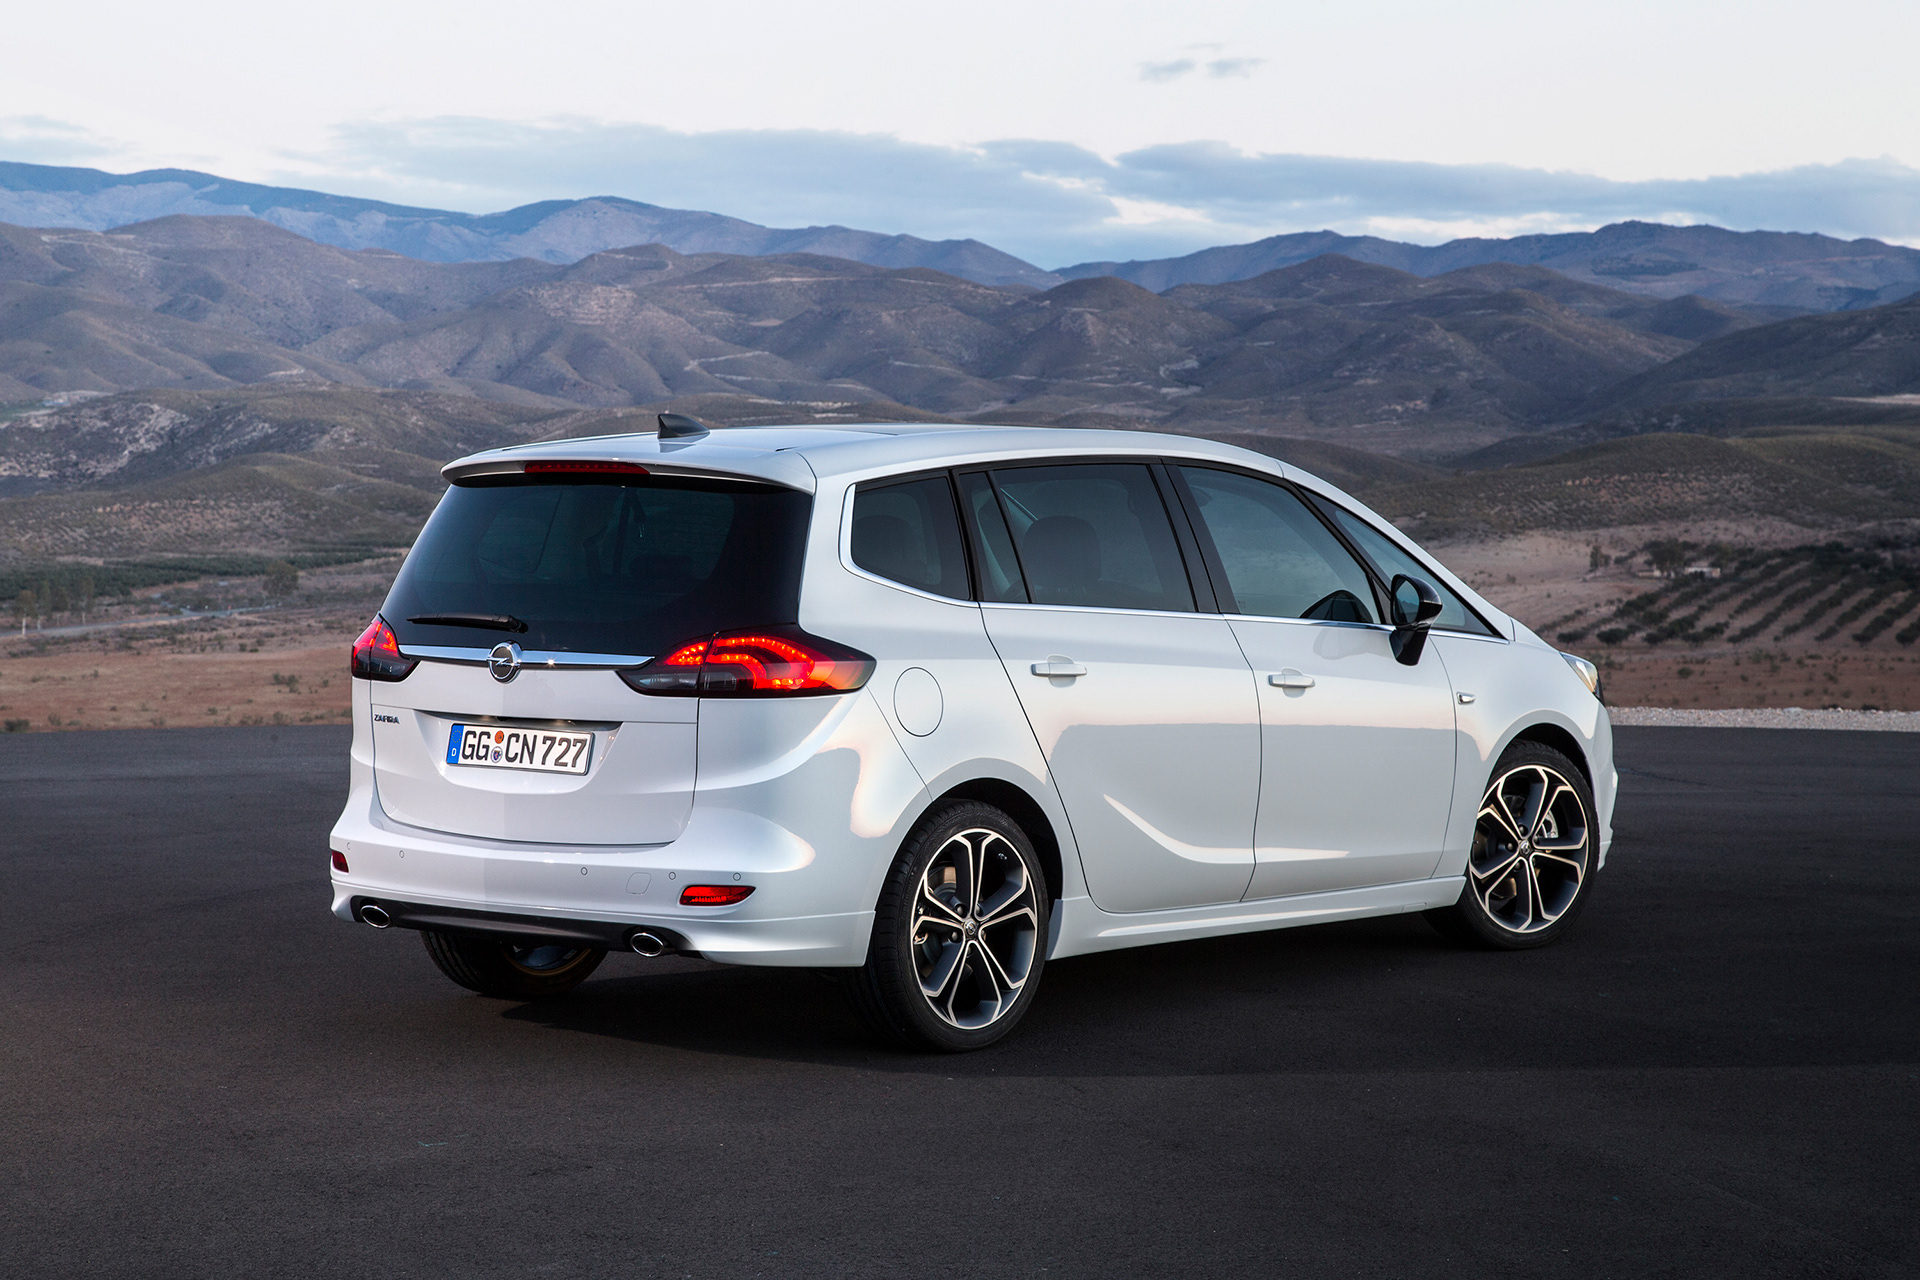 Thorsten Weigl Photography - Opel Zafira Tourer